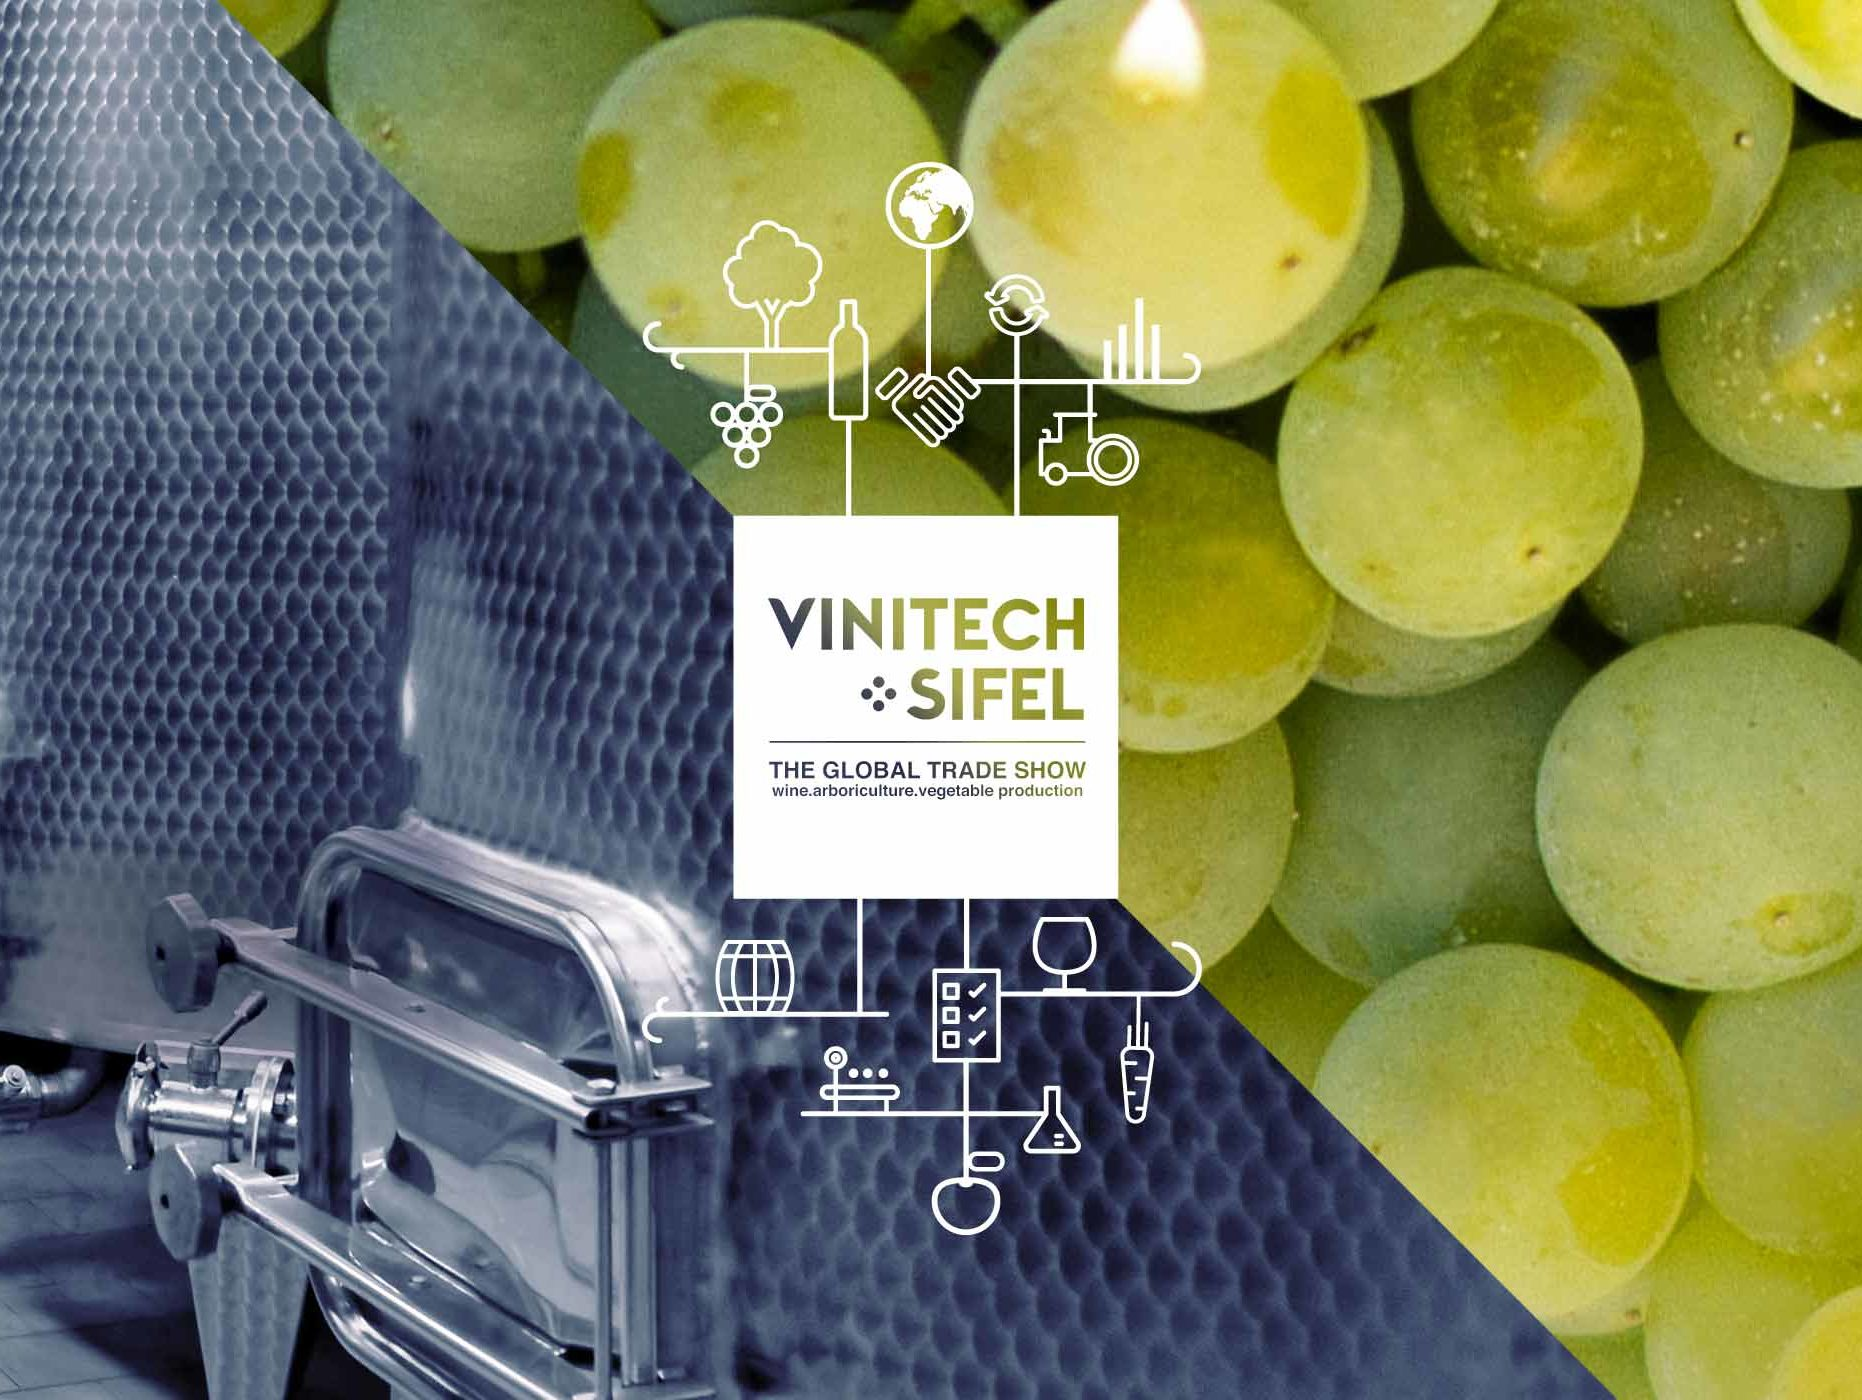 VINITECH SIFEL - The Global Trade show